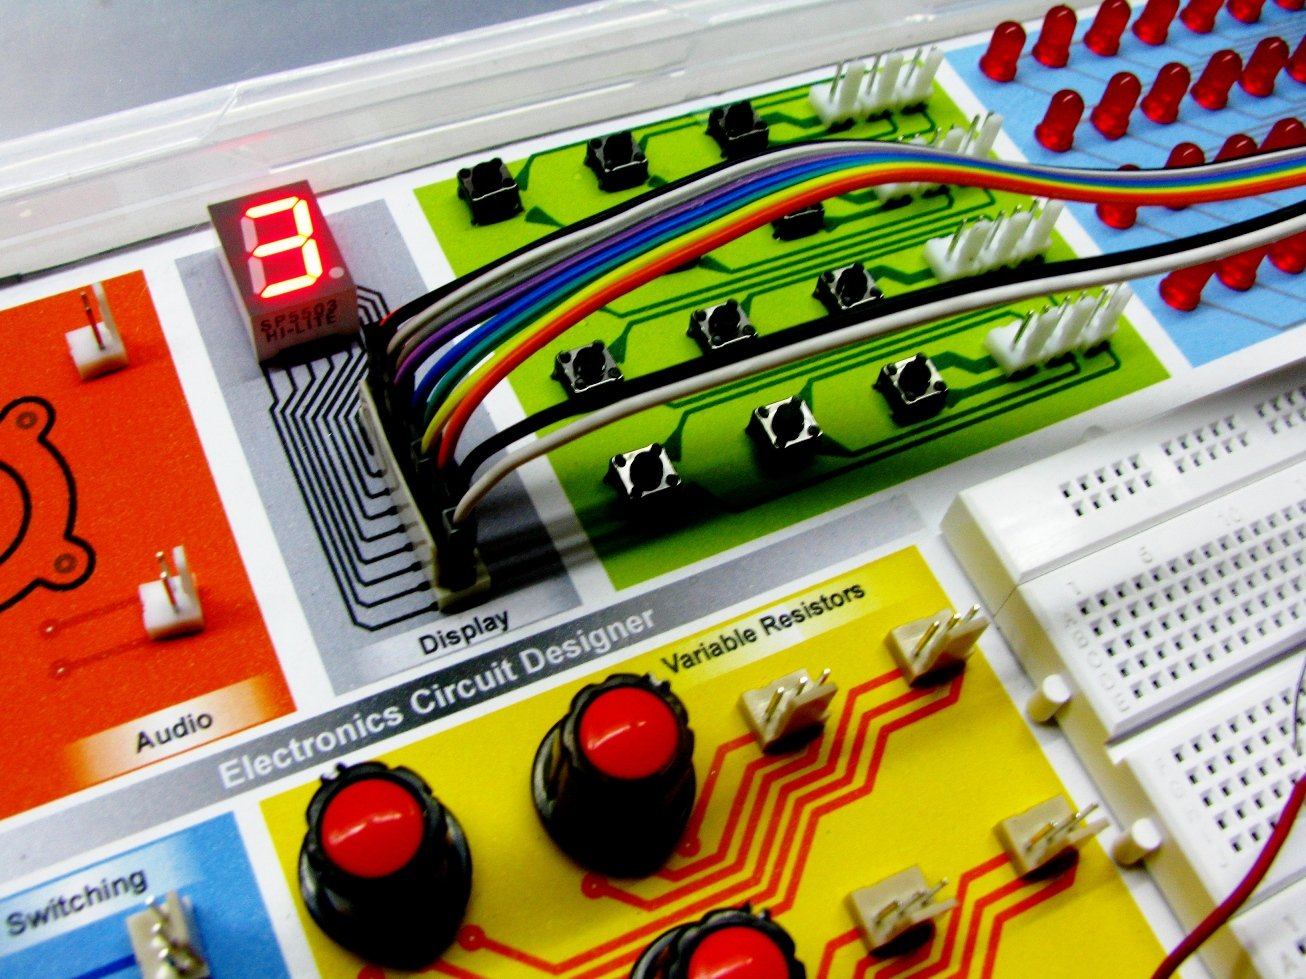 Electronics Project Kit 60 In 1 Circuits Electronically Designed Dice Game Circuit By Lm555